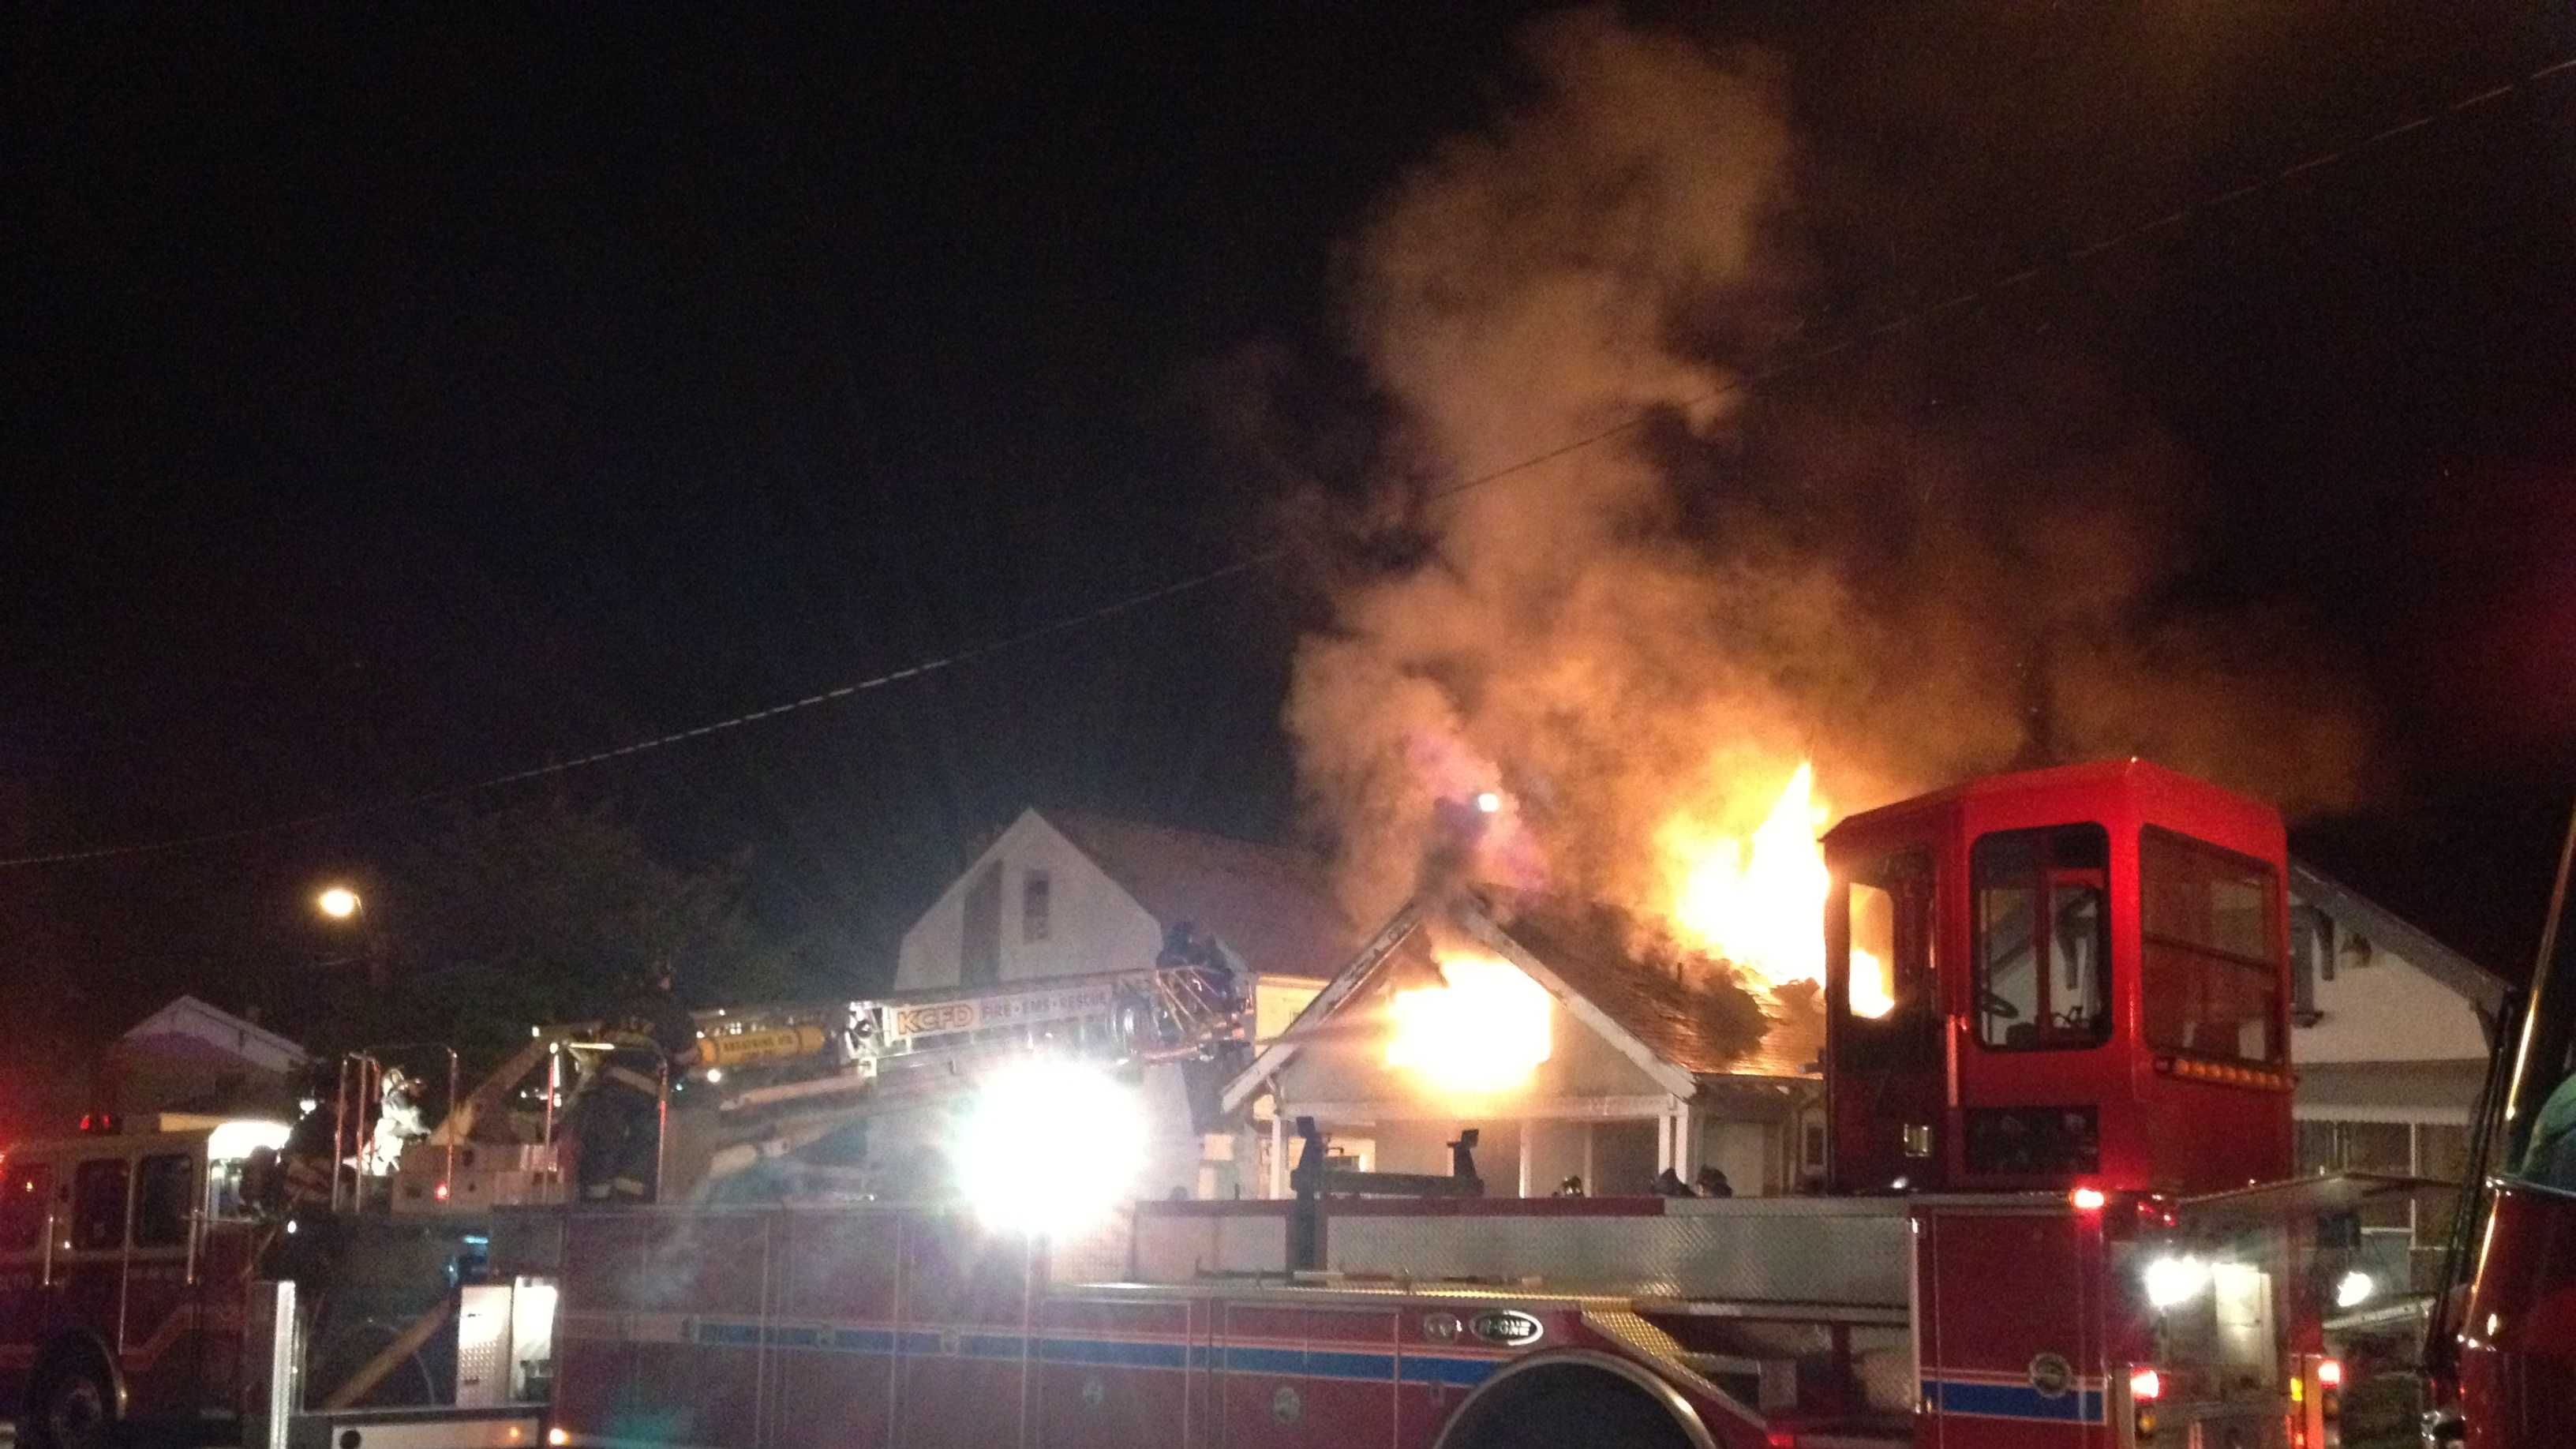 A one-story house was engulfed near 40th and South Benton Thursday night.